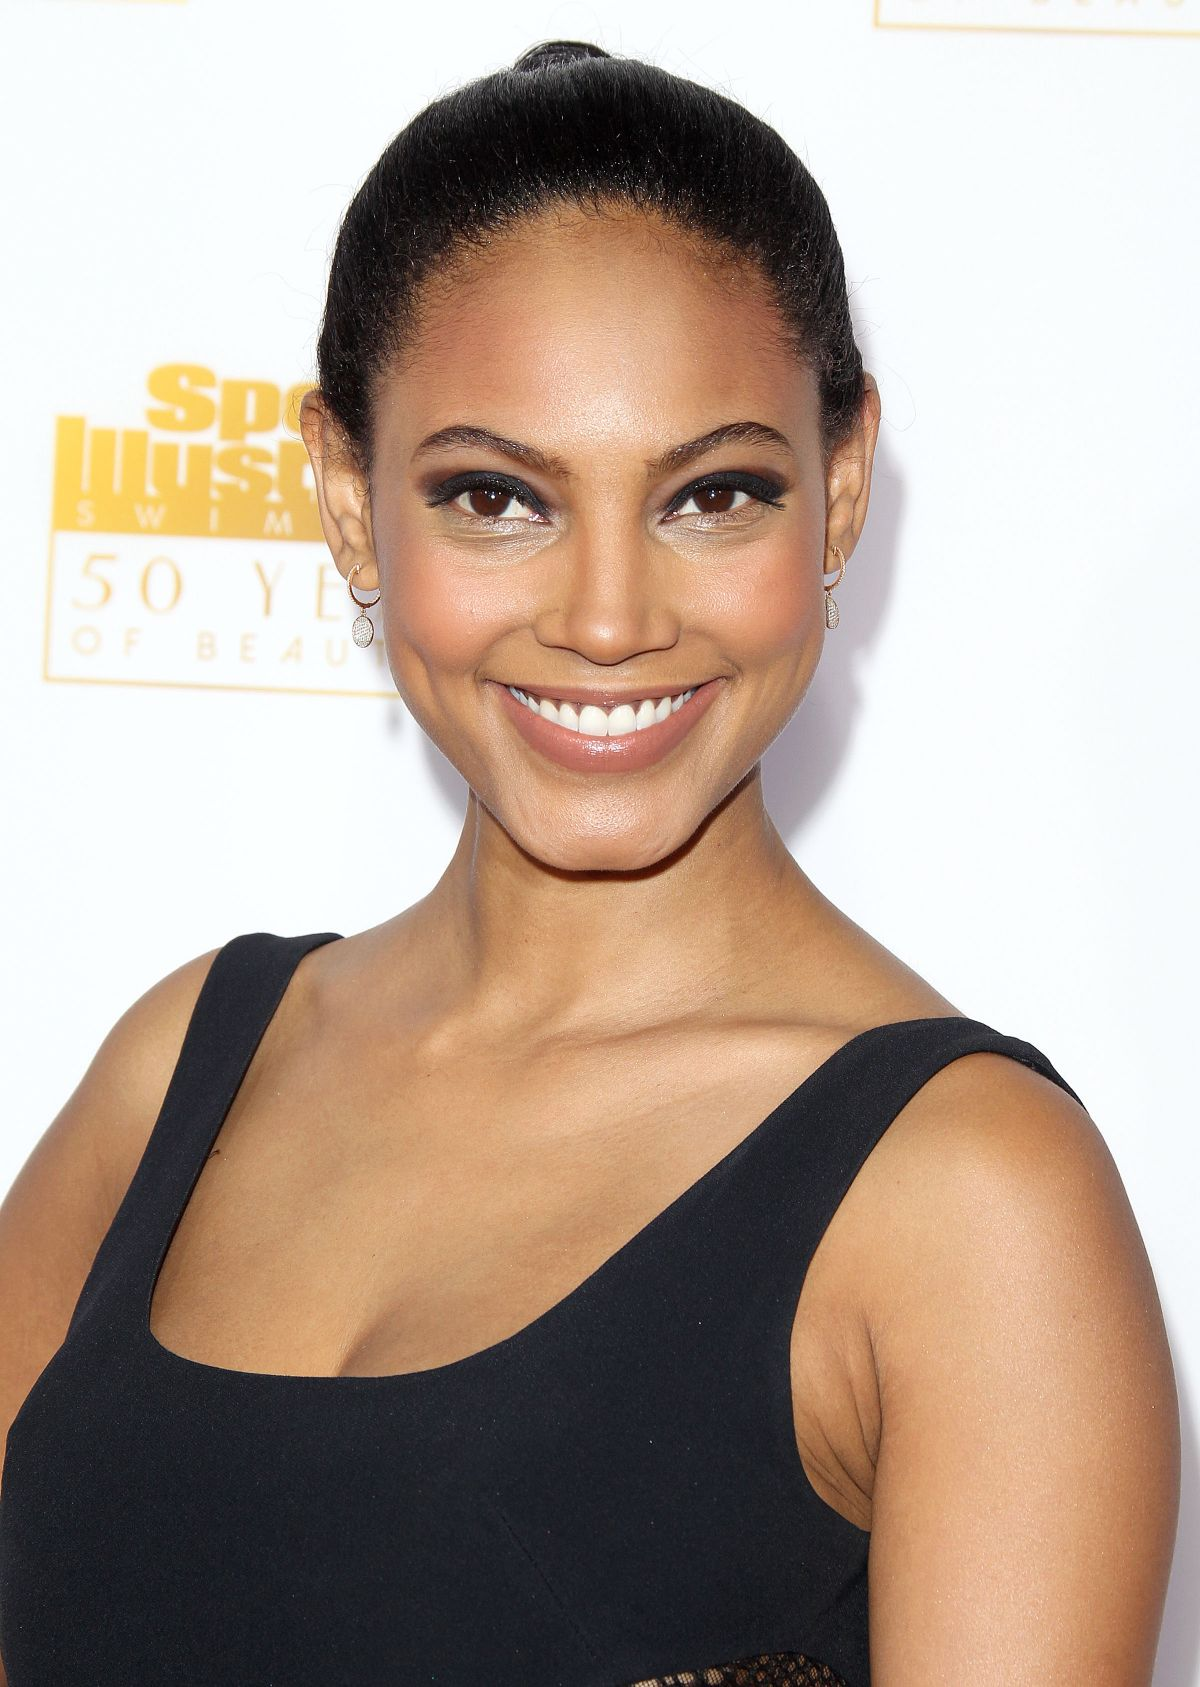 Ariel Meredith At 50th Anniversary Of The SI Swimsuit Issue Celebration In Hollywood